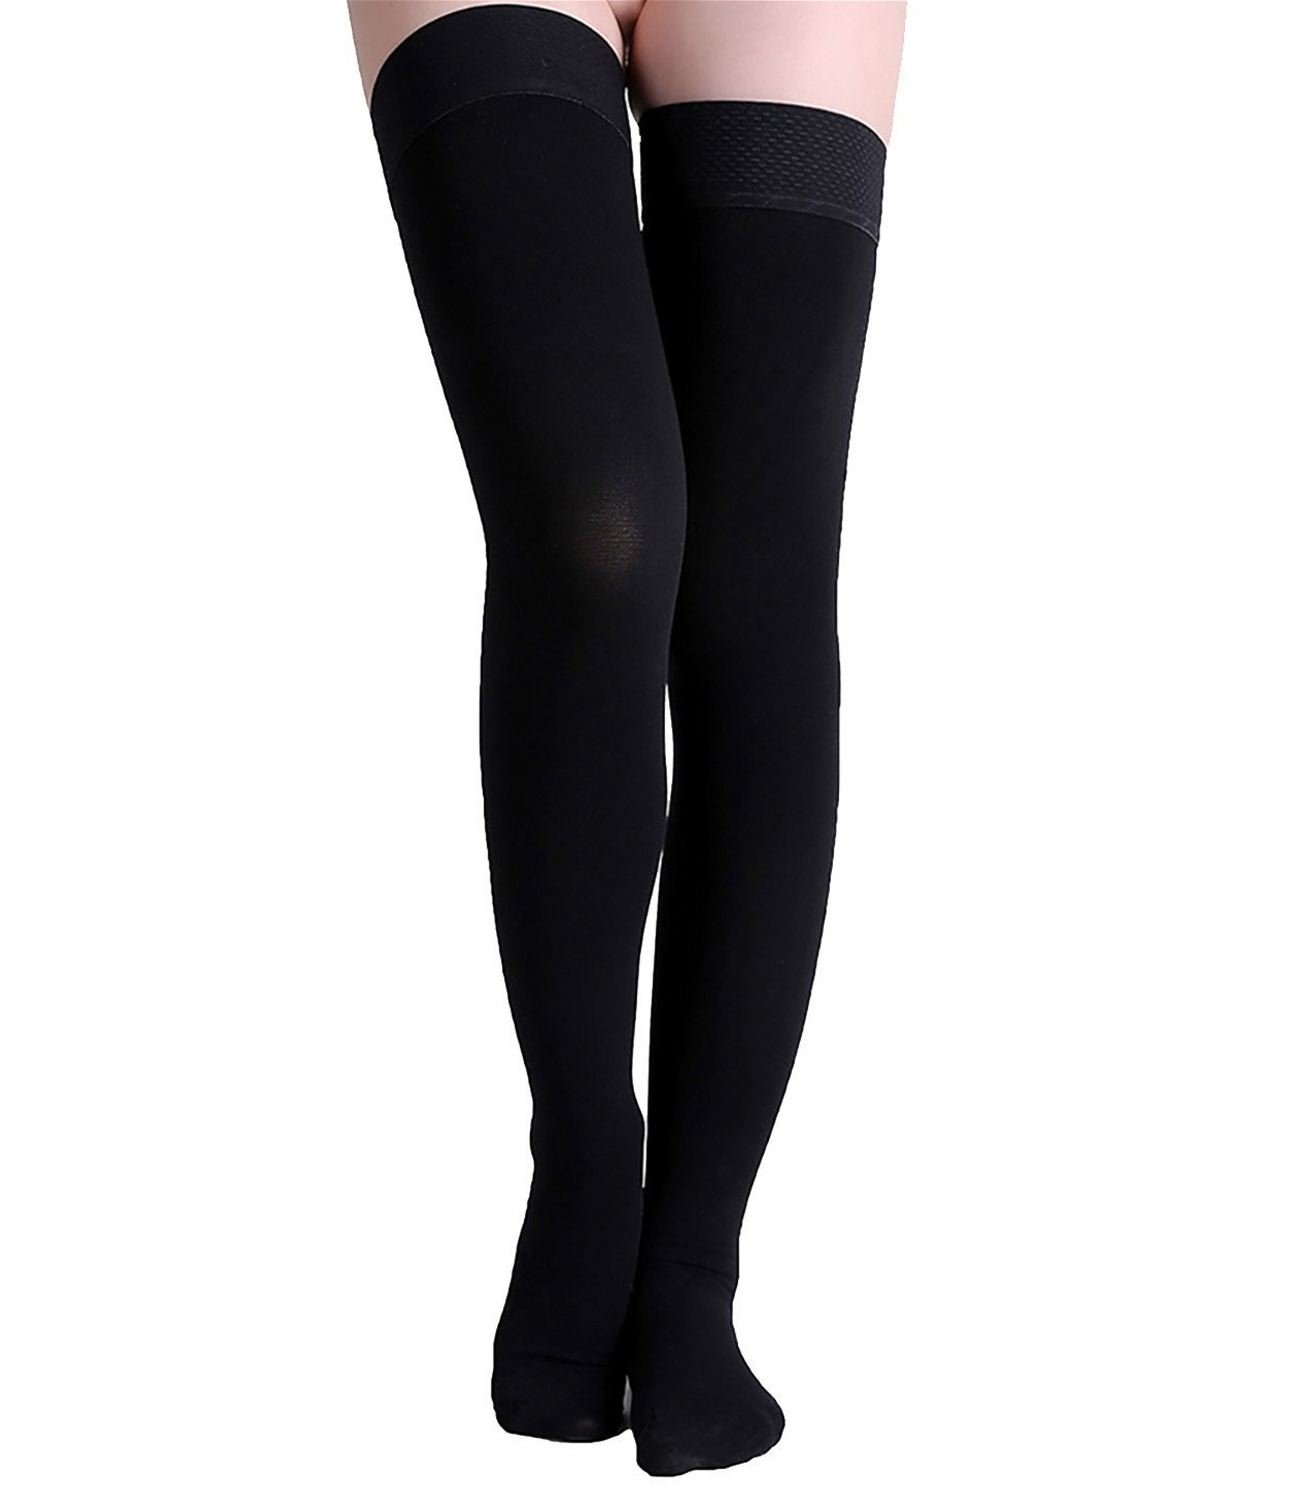 Runee High Quality Thigh High Closed Toe Compression Stockings Best For Swelling, Varicose Vein, DVT, Edema, Spider Vein, Travel, Pregnancy (Black, S/M)